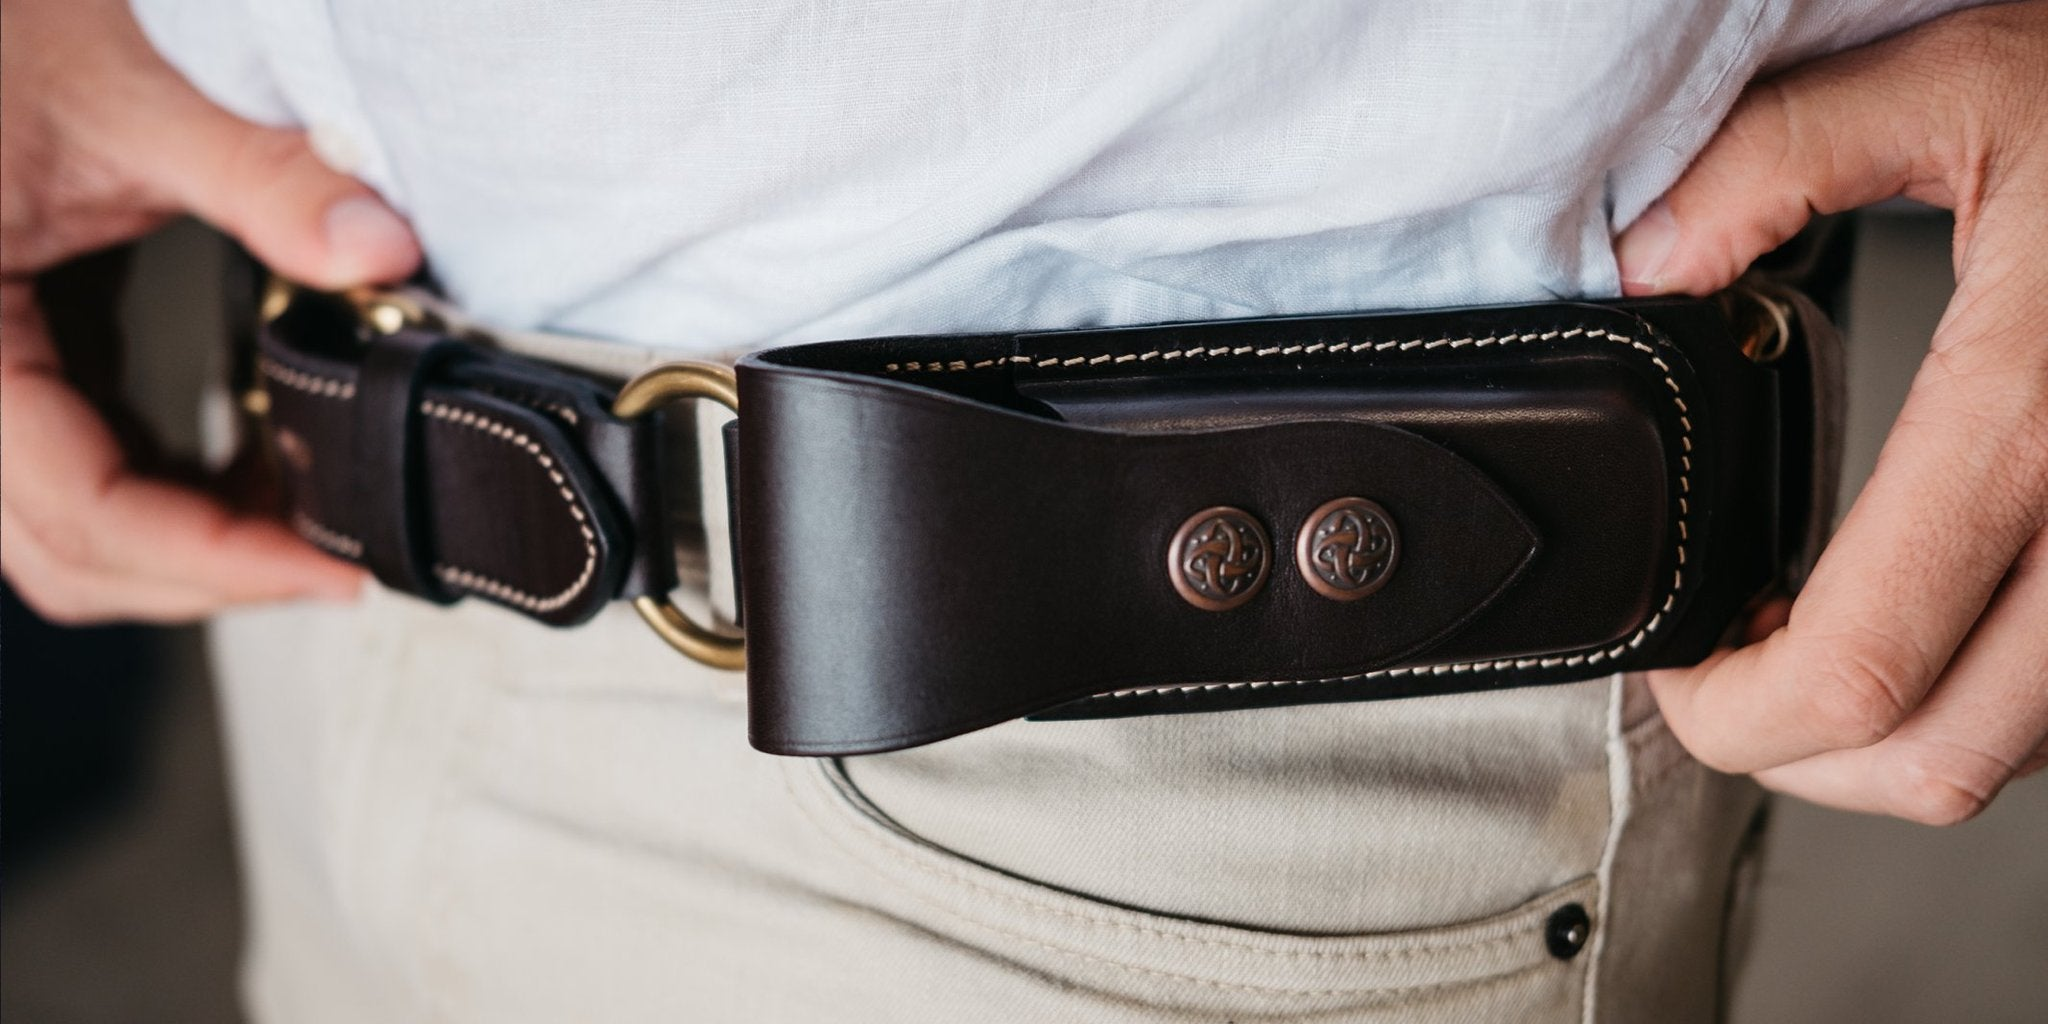 Australian Made Hobble Belt with Leatherman Pouch